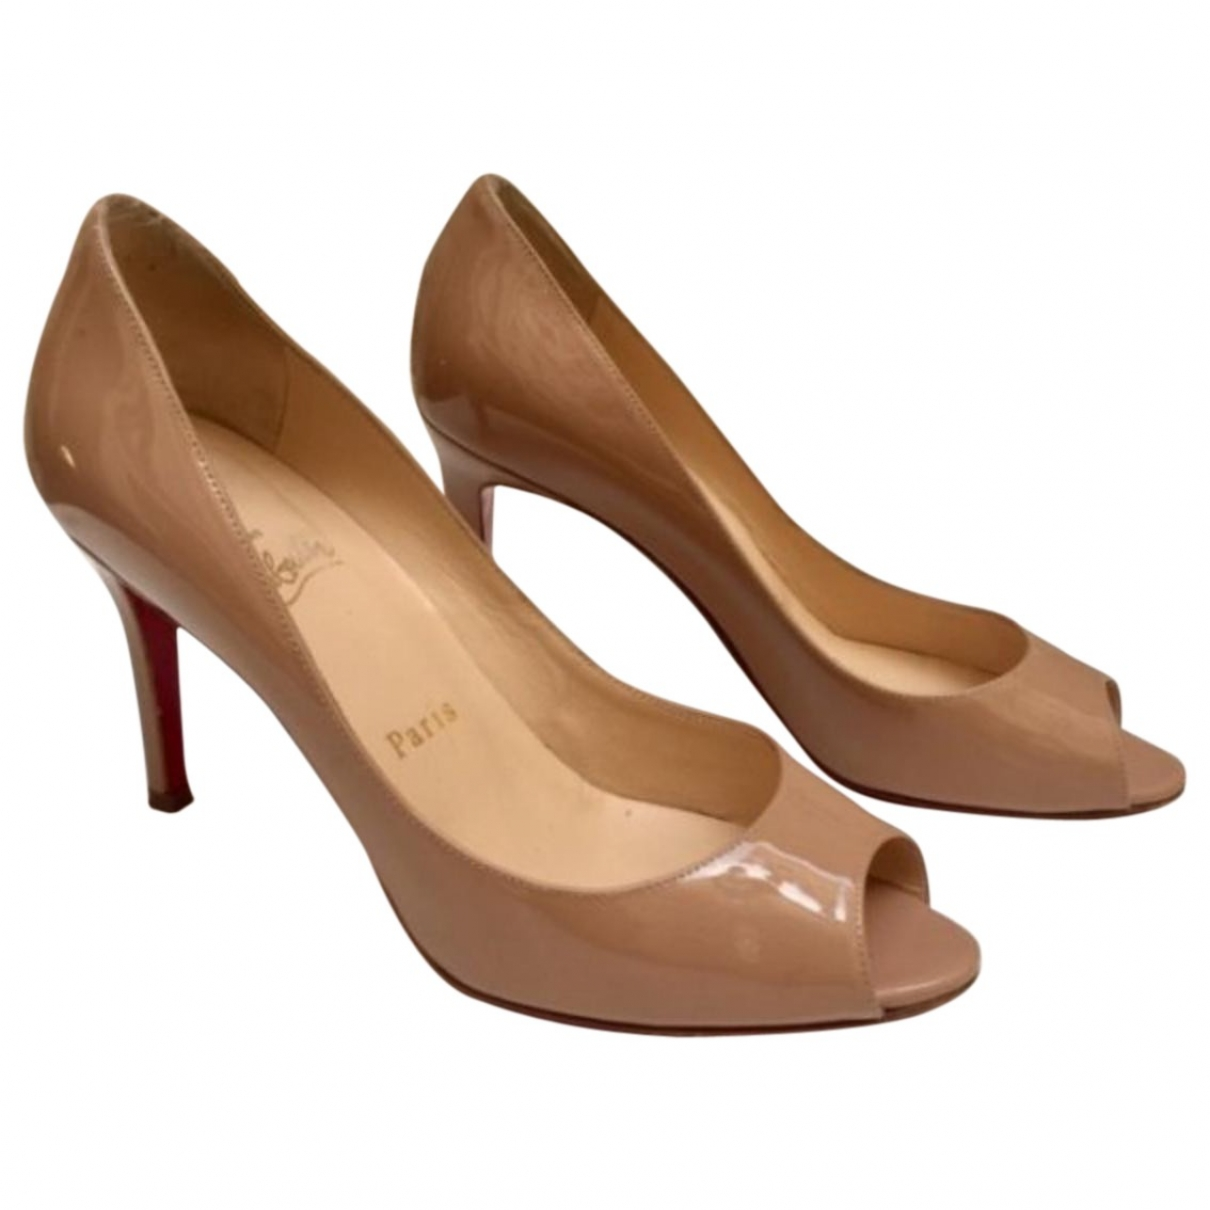 Christian Louboutin Private Number Beige Patent leather Heels for Women 36 EU